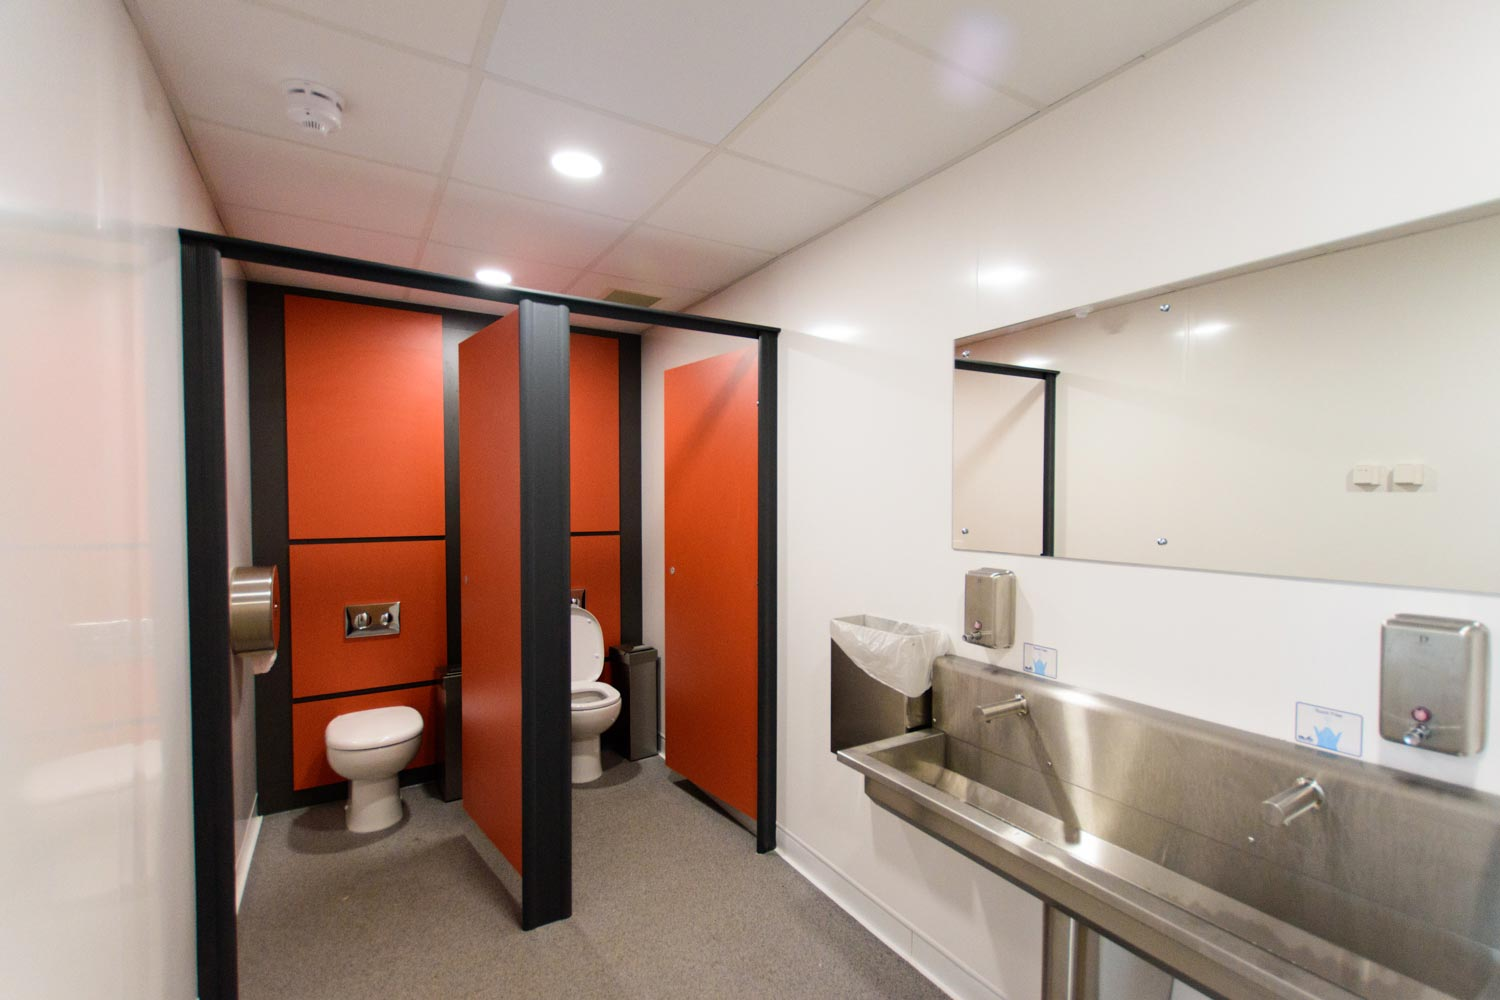 Temple Green Leeds - Modular building Park and Ride station WC facilities